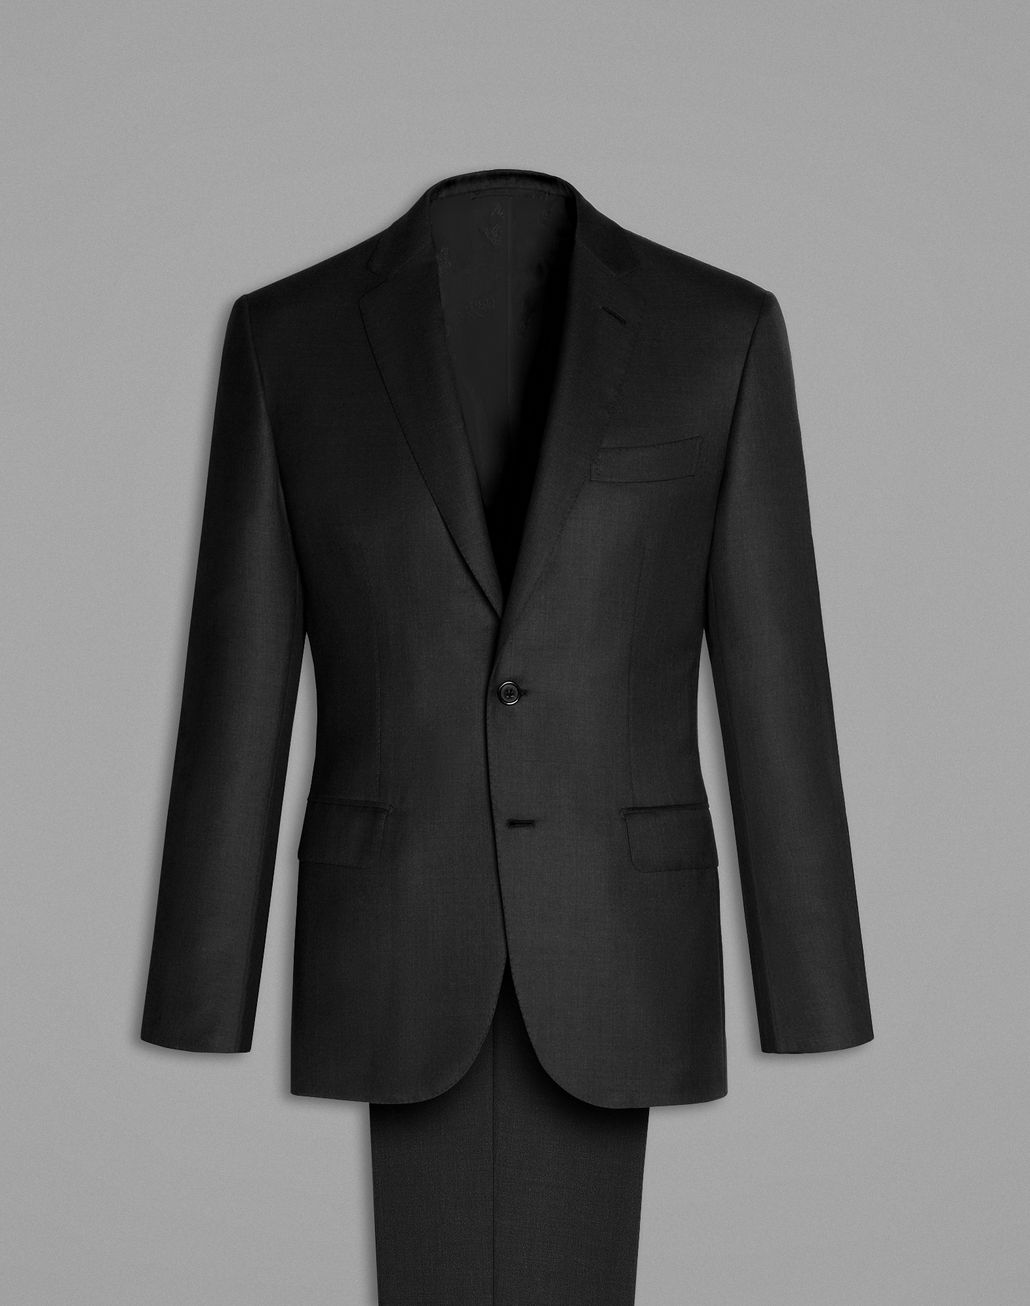 BRIONI 黑色 Madison 西装 Suits & Jackets [*** pickupInStoreShippingNotGuaranteed_info ***] f